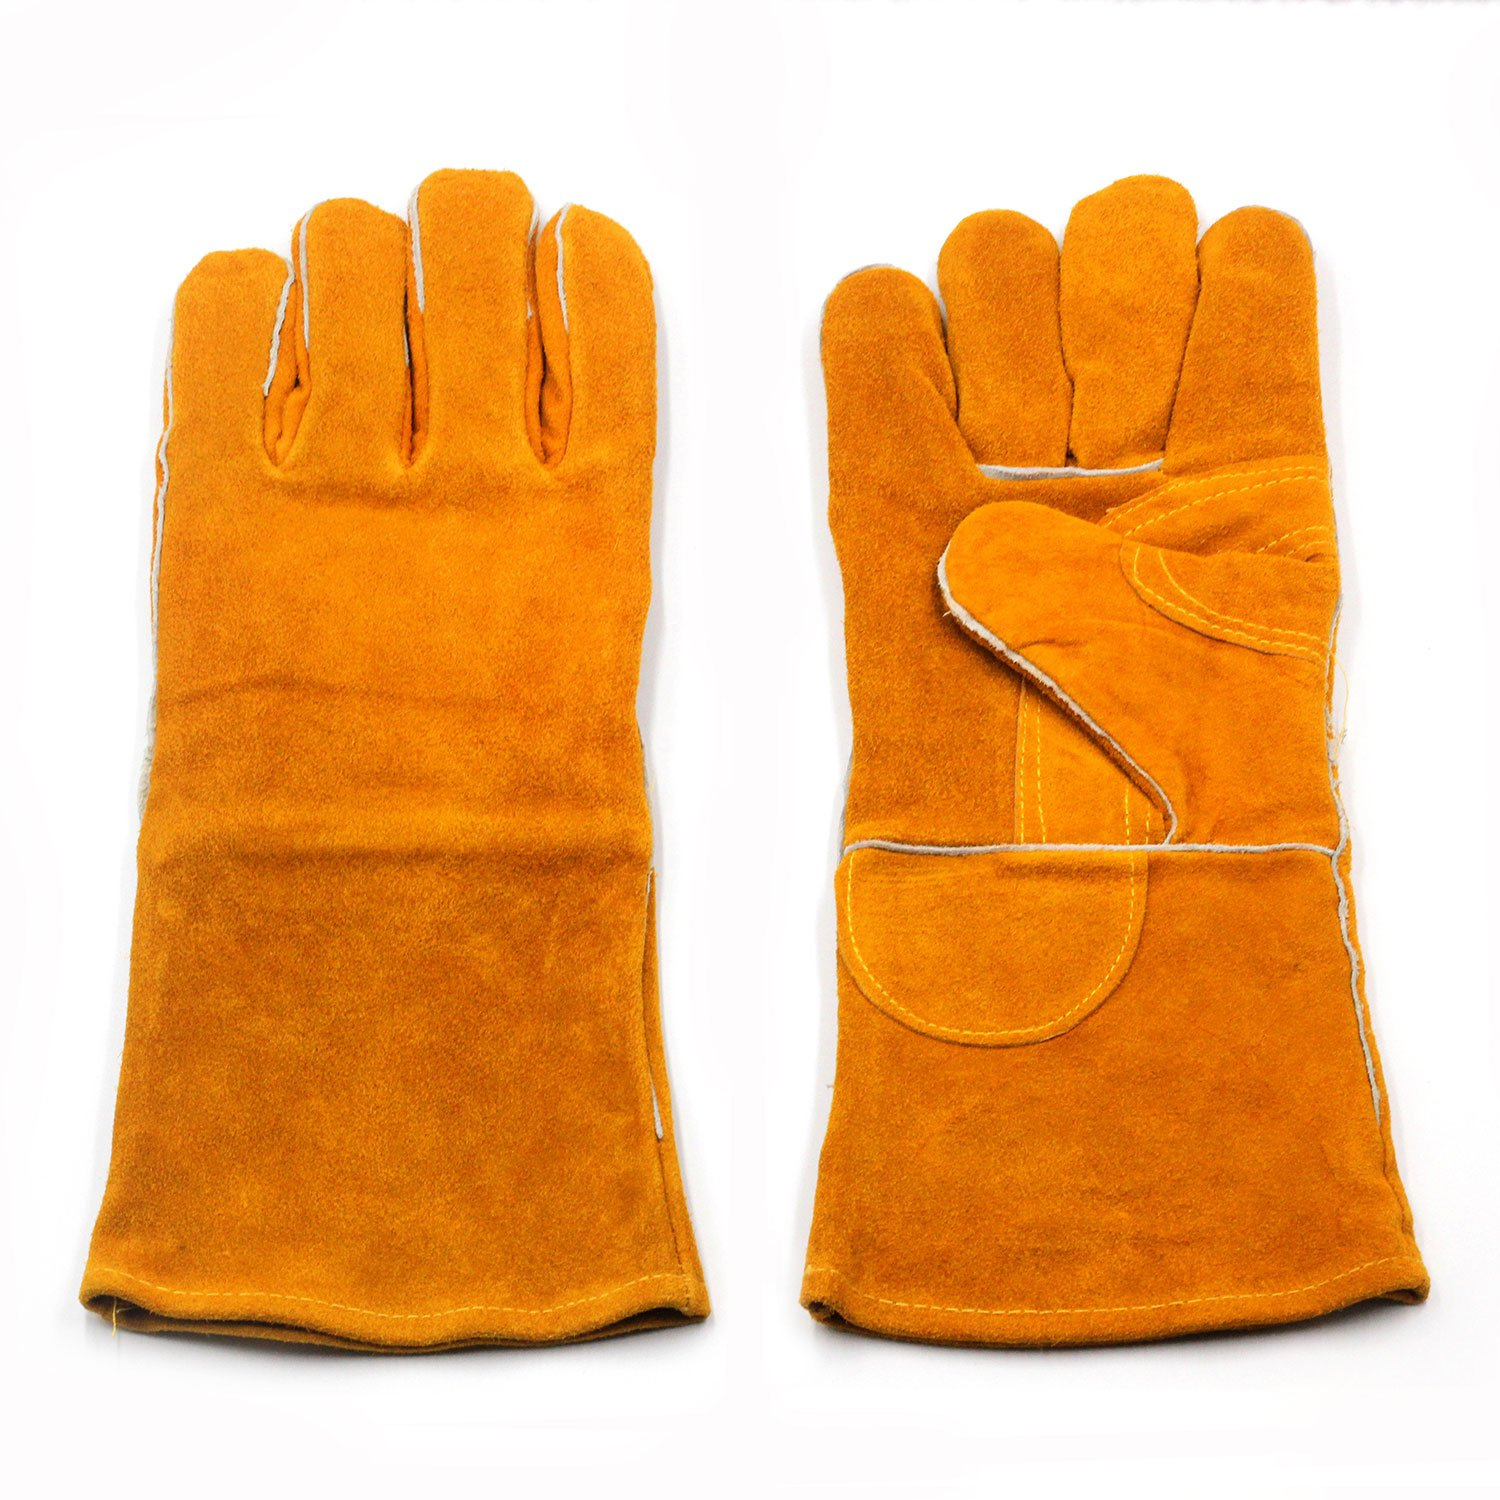 Welding Gloves Heat/Fire Resistant Leather Forge BBQ Gloves Perfect for Fireplace, Stove, Oven, Grill, Mig, Pot Holder, Animal Handling with 14 inches Extra Long Sleeve (Yellow)